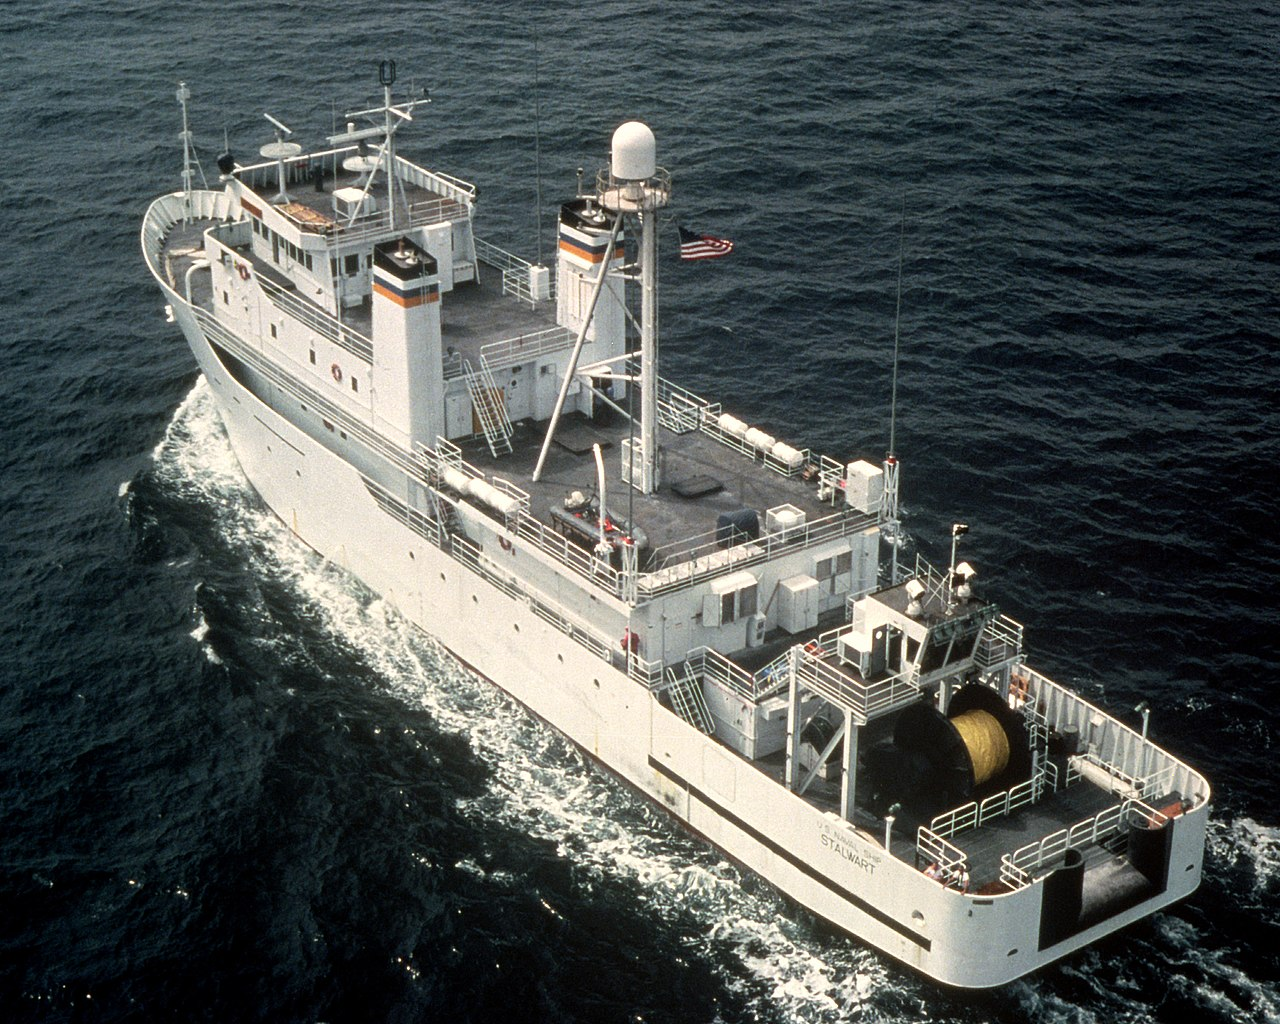 File:USNS Stalwart port quarter view.jpg - Wikipedia